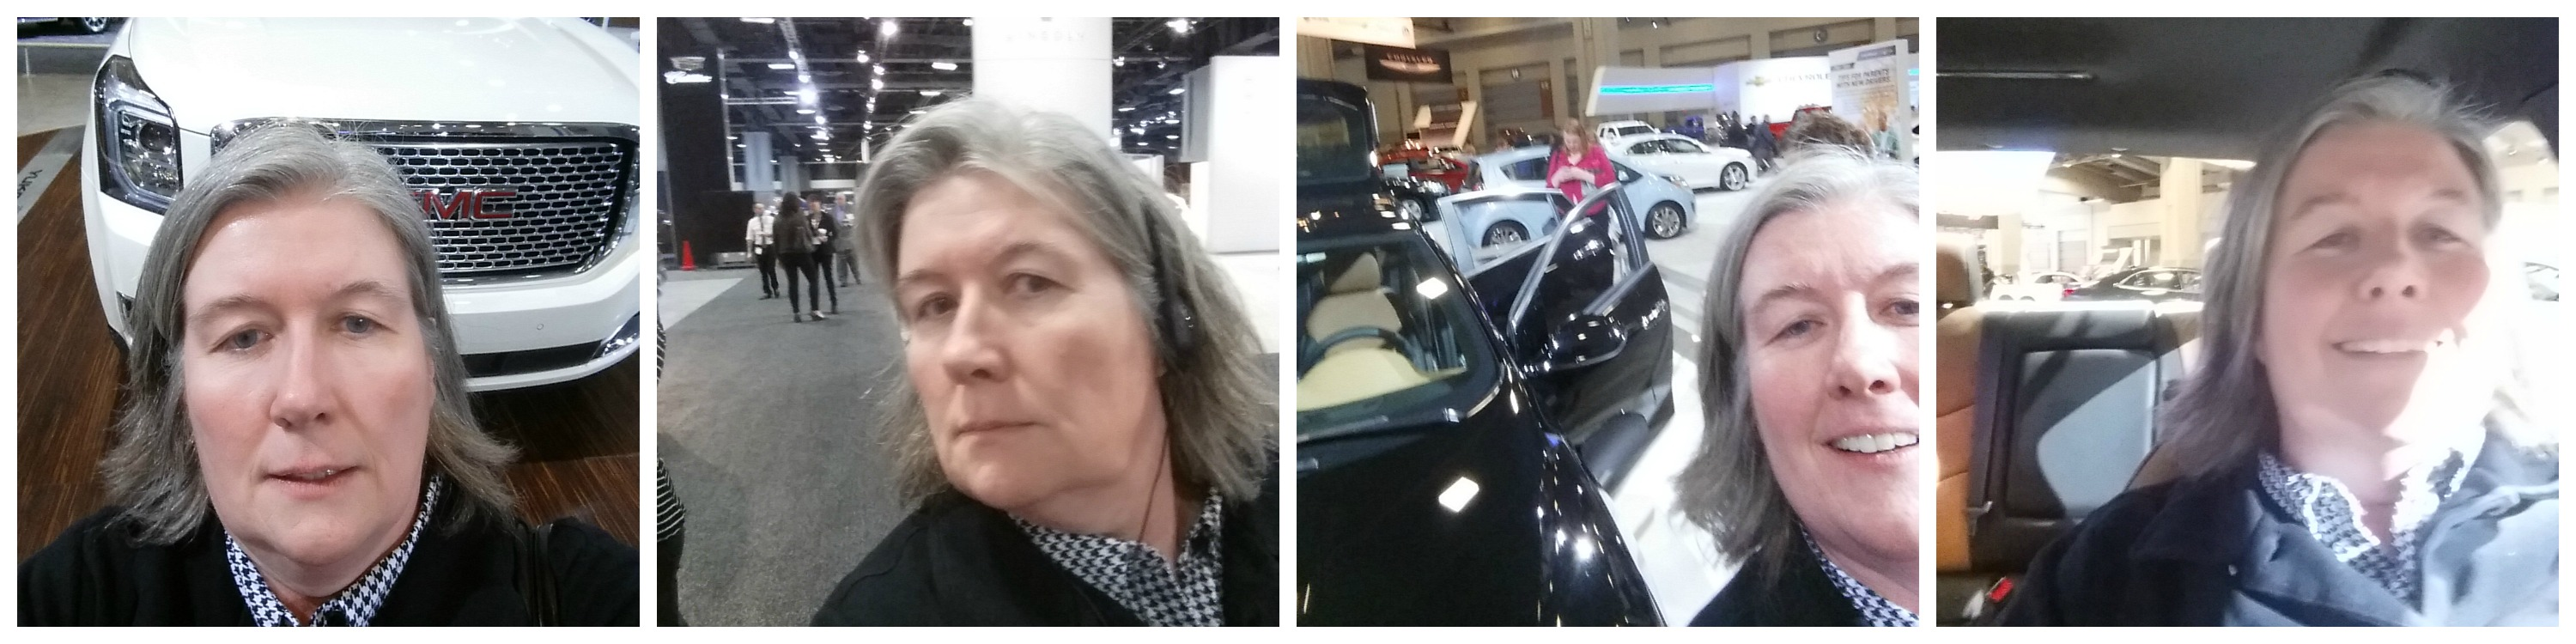 Selfies at the Washington Auto Show